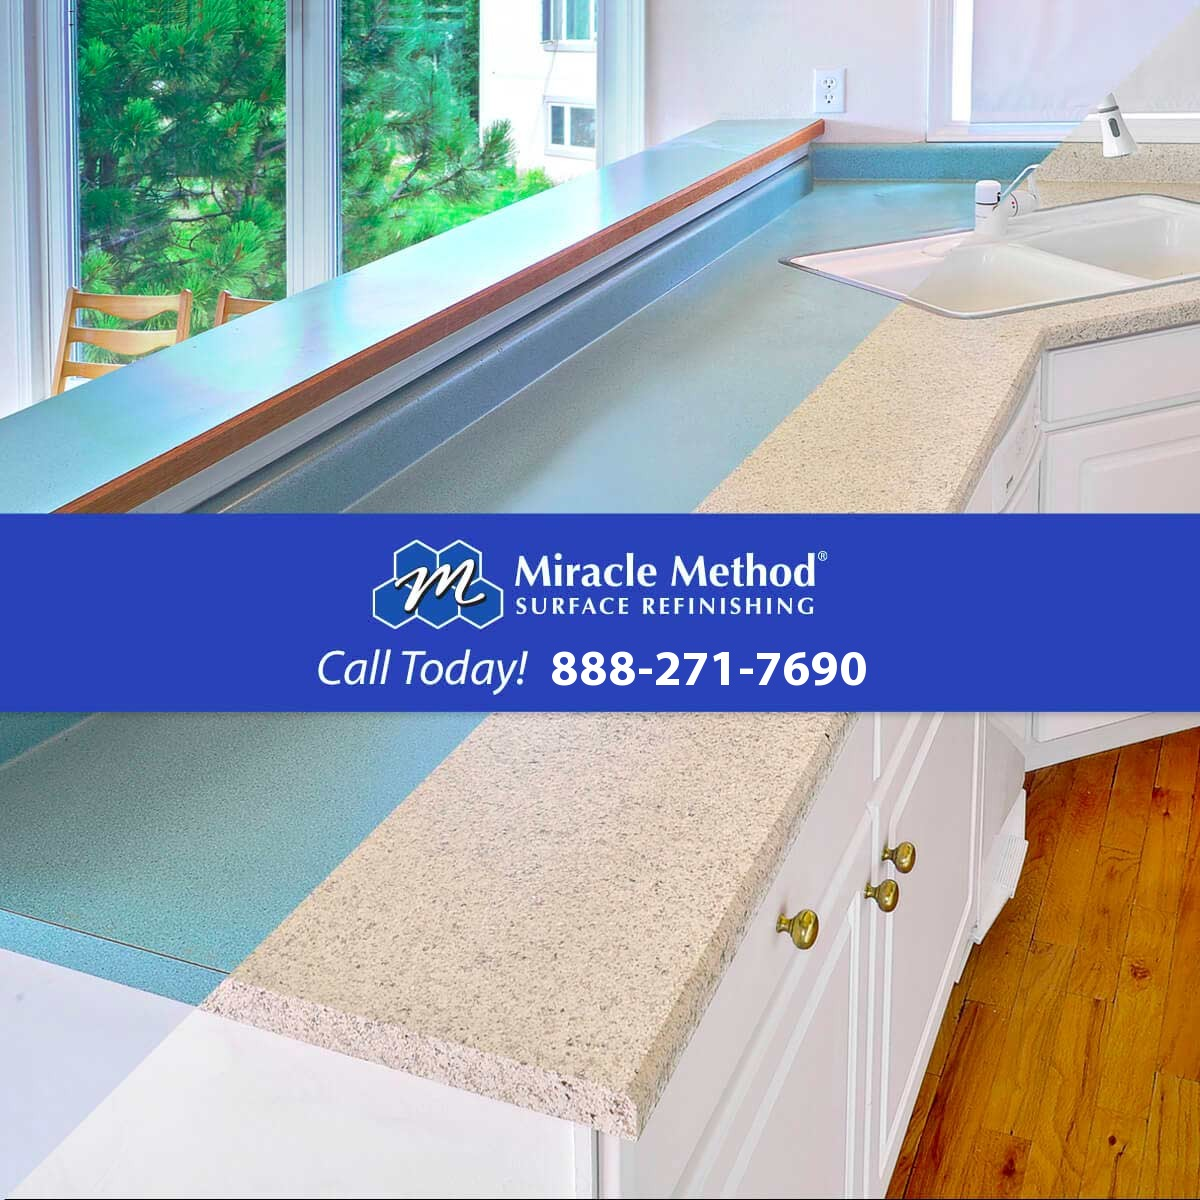 Bathtub Refinishing & Resurfacing - Tub Glazing - Birmingham, AL